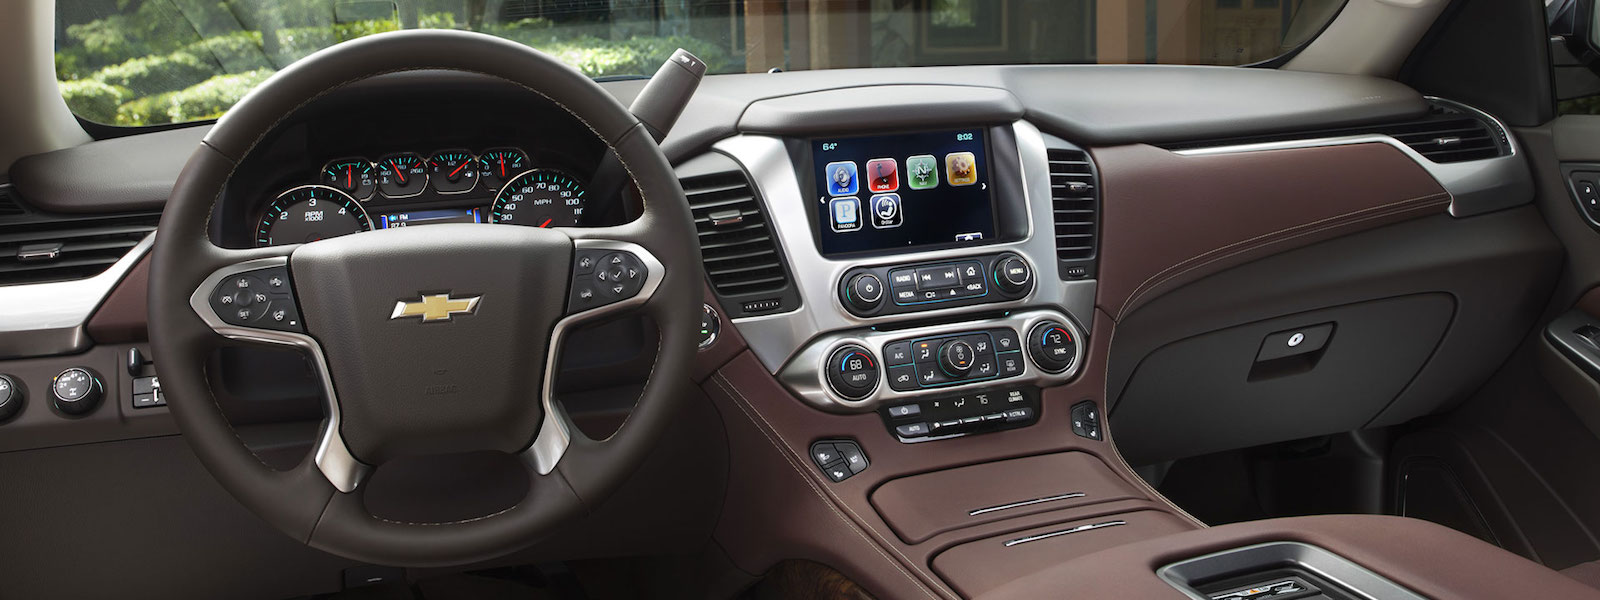 The brown dashboard of a 2016 Chevy Tahoe is shown.